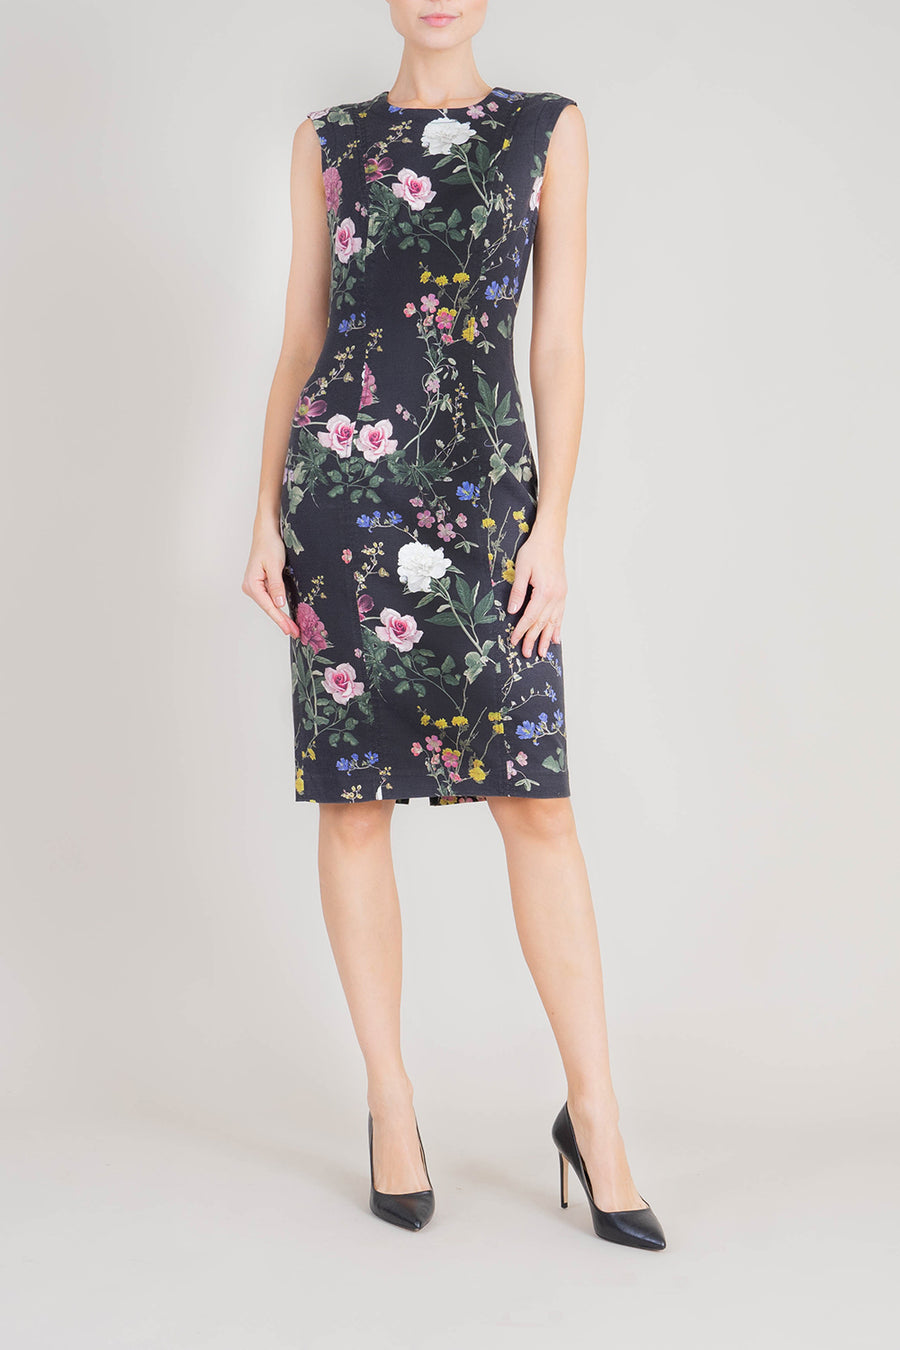 Wildflower Sheath Dress - level99jeans